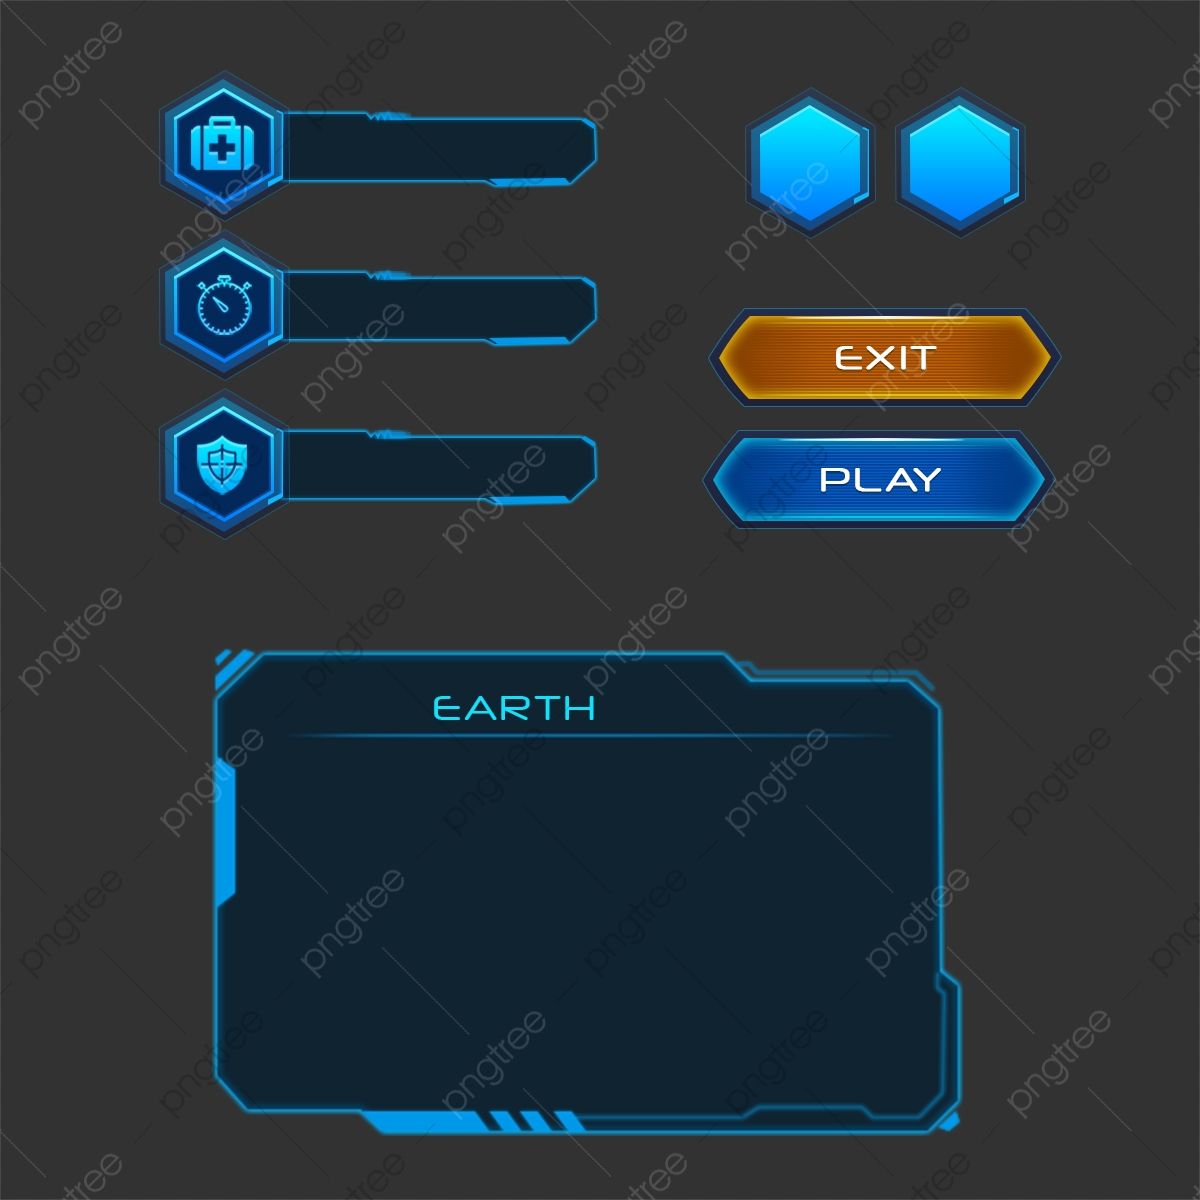 ui png images vector and psd files free download on pngtree https pngtree com freepng set of buttons with good organized layers ui elements buttons panel in blue sci fi style 4992630 html